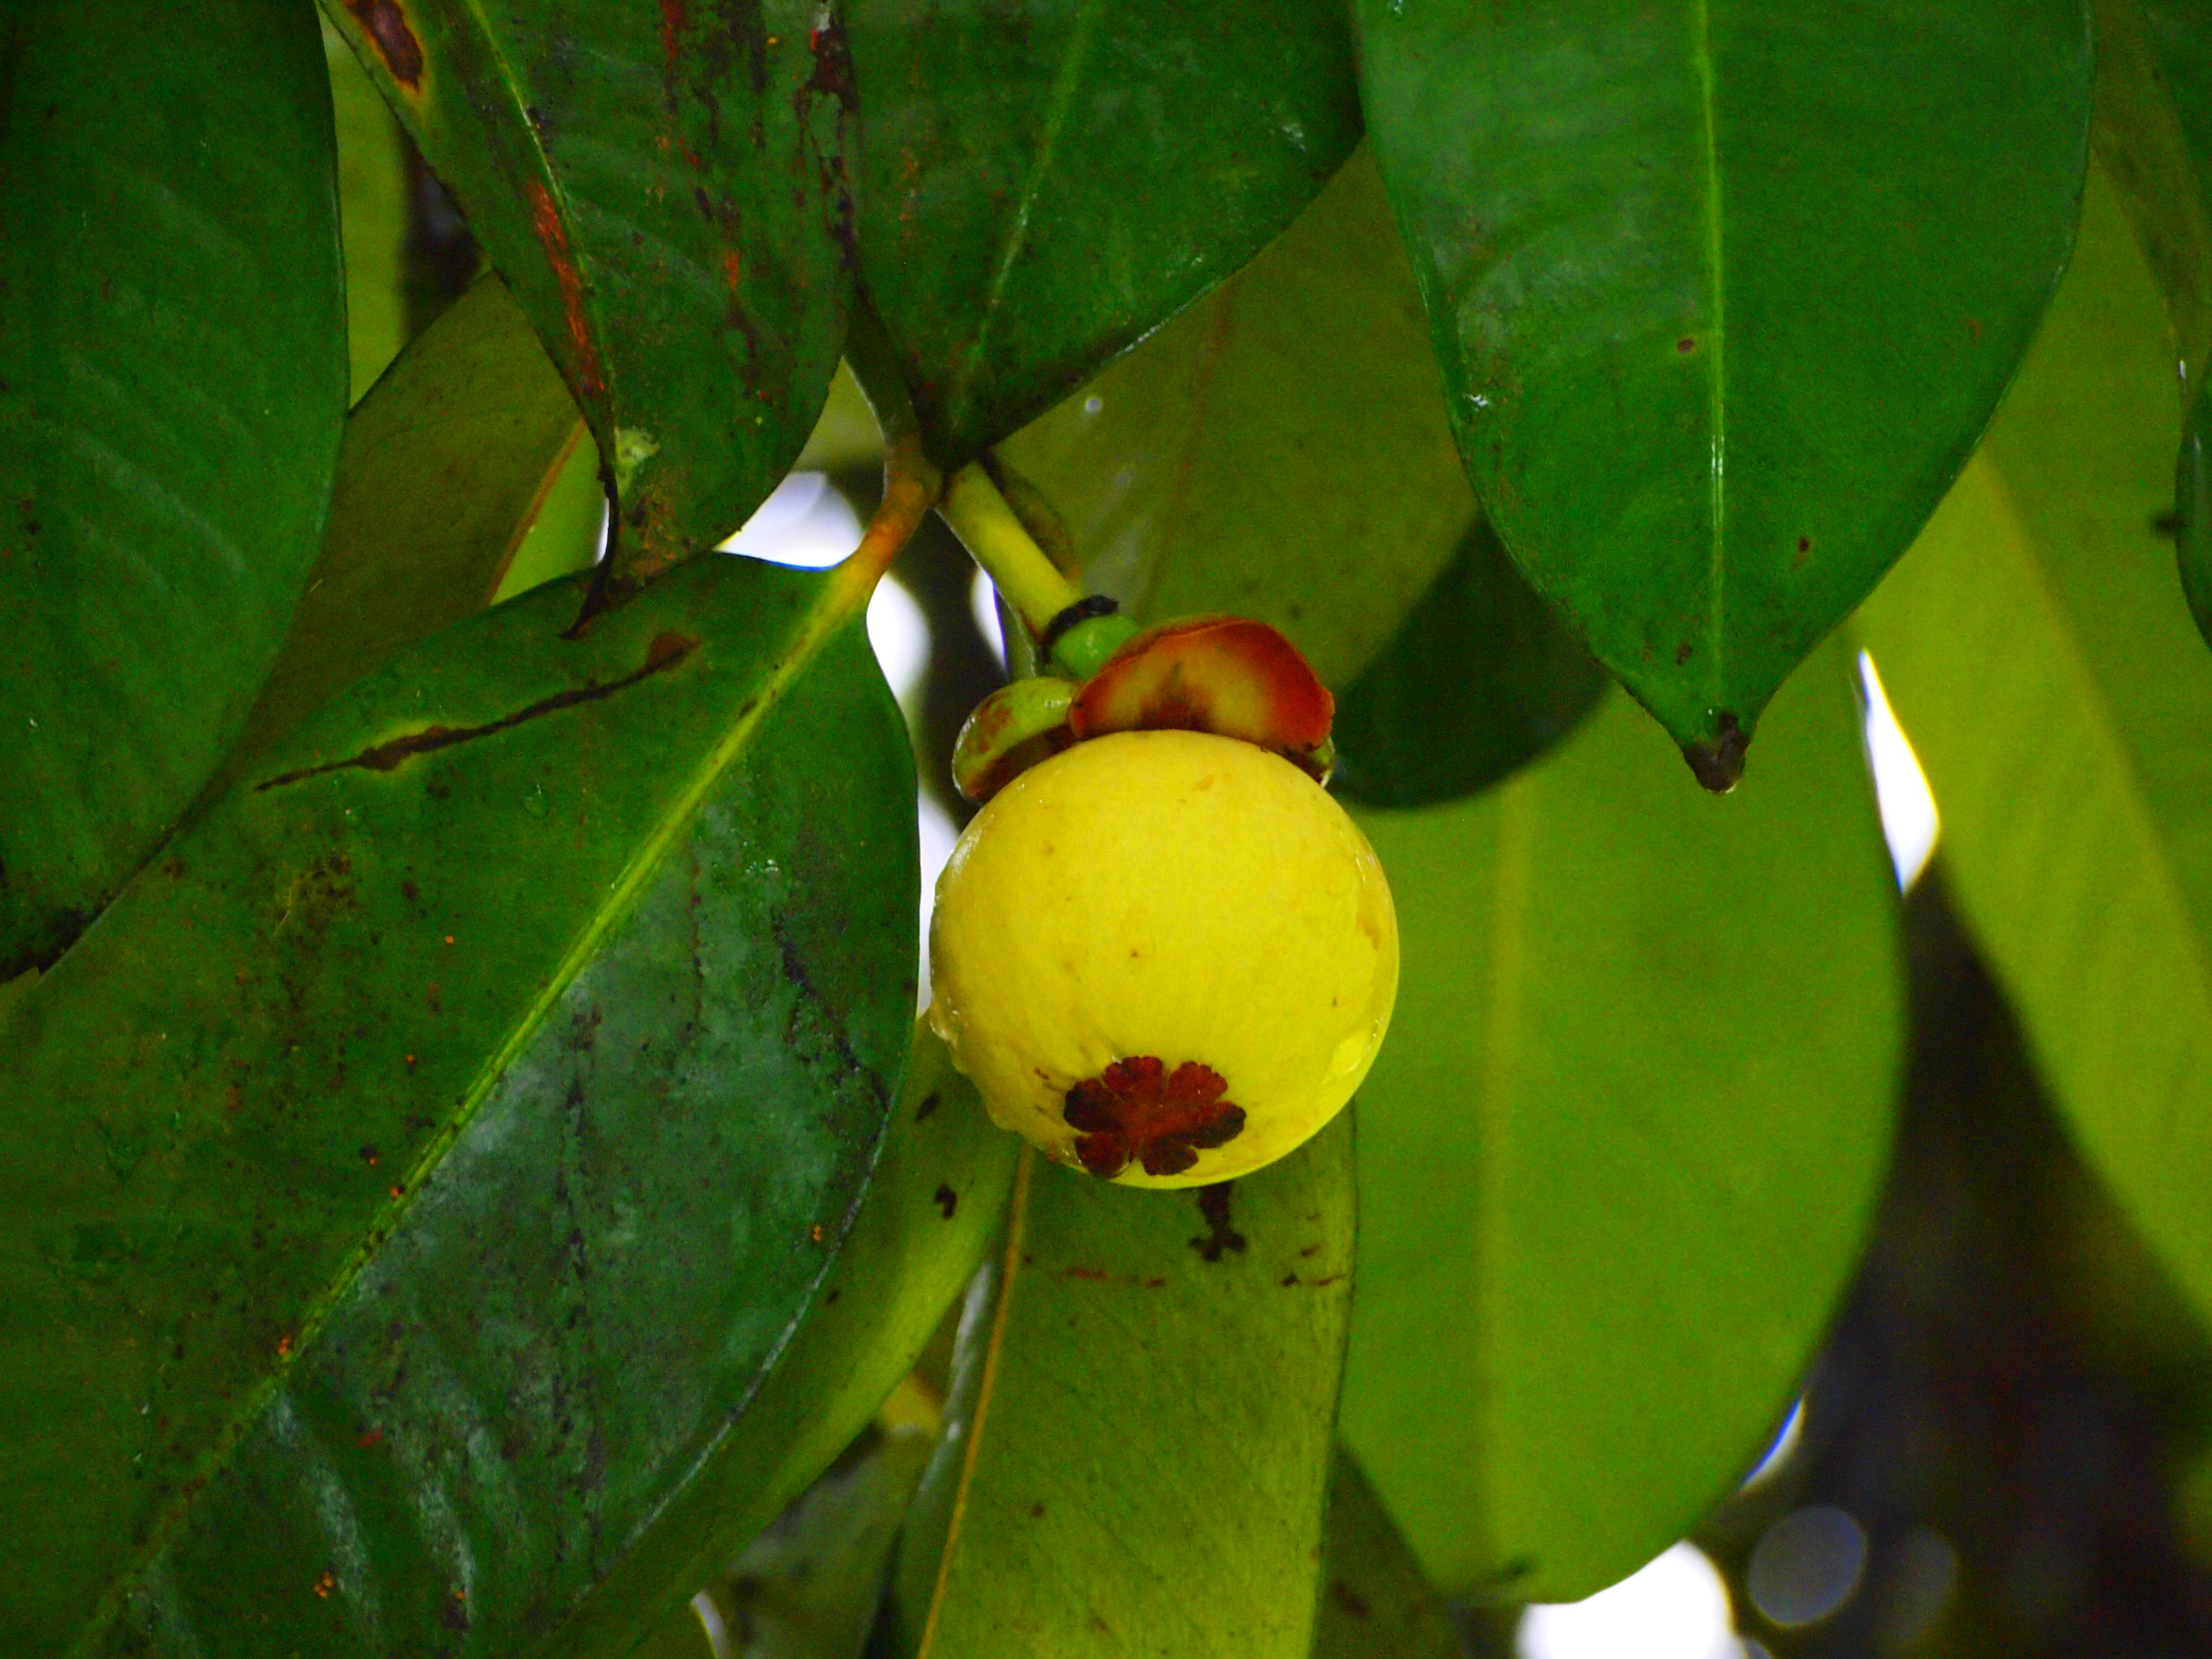 Young Mangosteen Fruit in Malaysia. Photo taken on November 6, 2011.